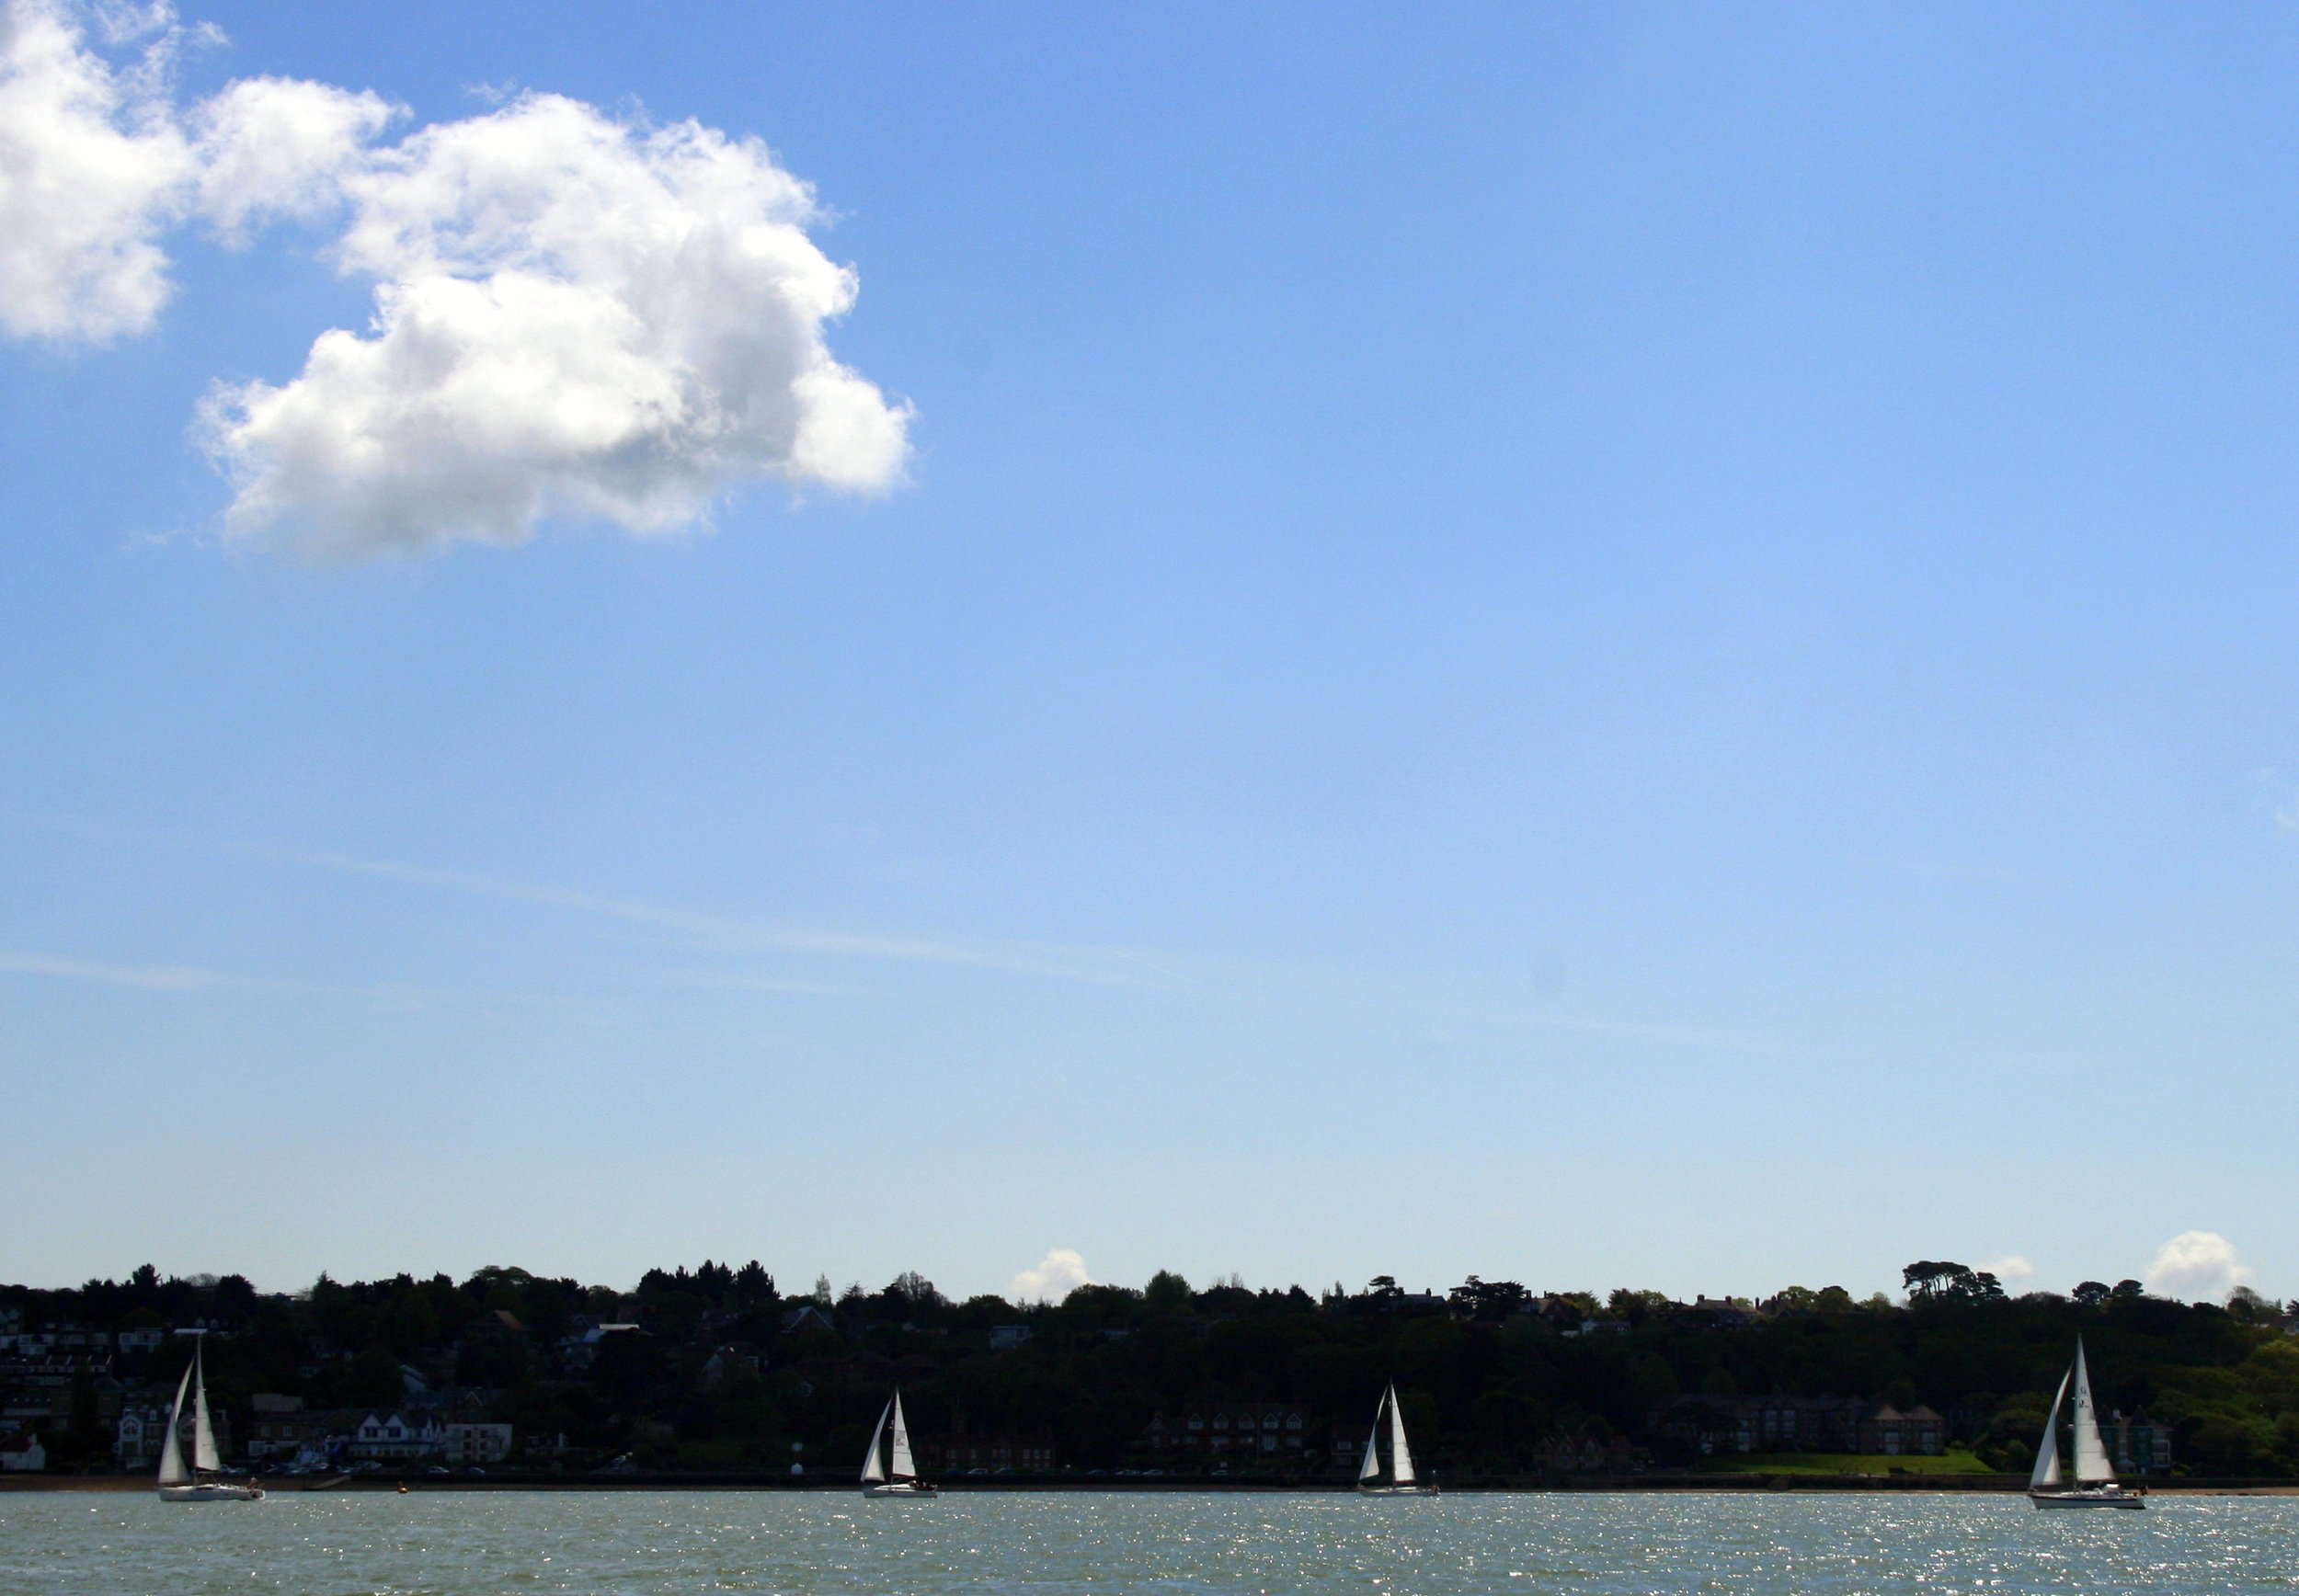 Conveniently-spaced yachts near Cowes, Isle of Wight  (Humphrey Butler/Marvellous Maps)